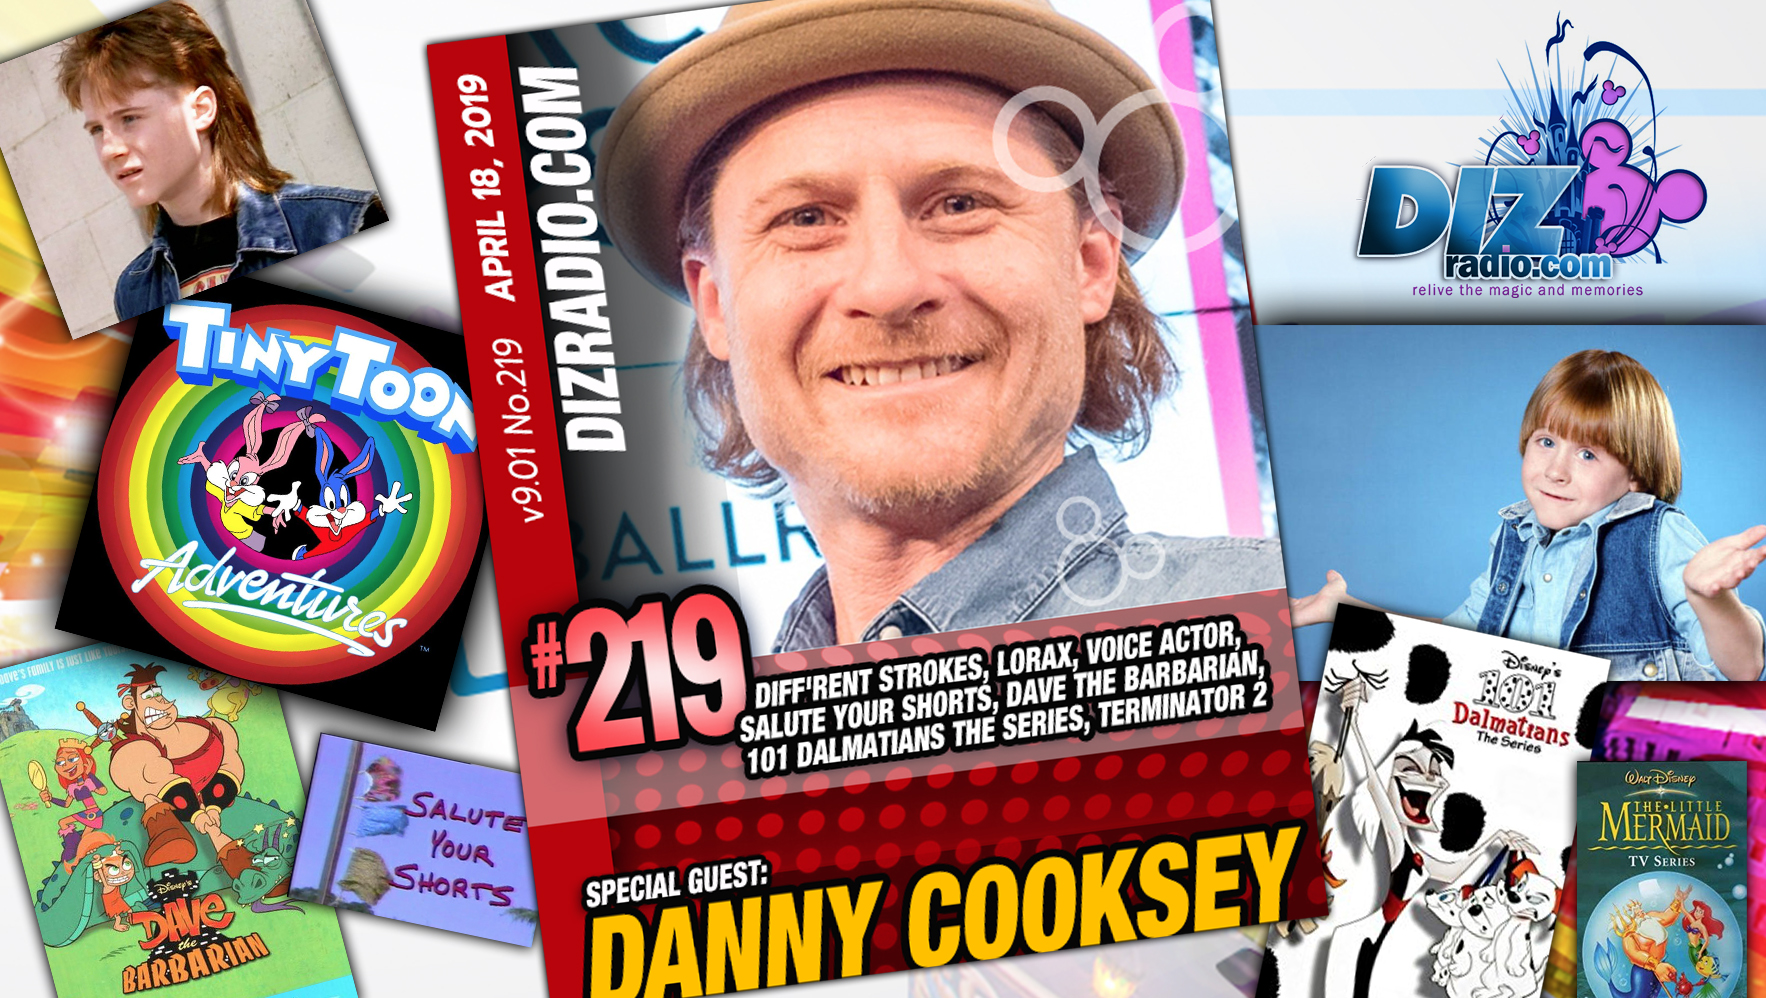 DANNY COOKSEY (Different Strokes, Dukes of Hazard, T2, Salute Your Shorts, Dave the Barbarian, Kick Buttowski, 101 Dalmatian Series, Tiny Toon Adventures, Ren & Stimpy, Little Mermaid, Musician and more)